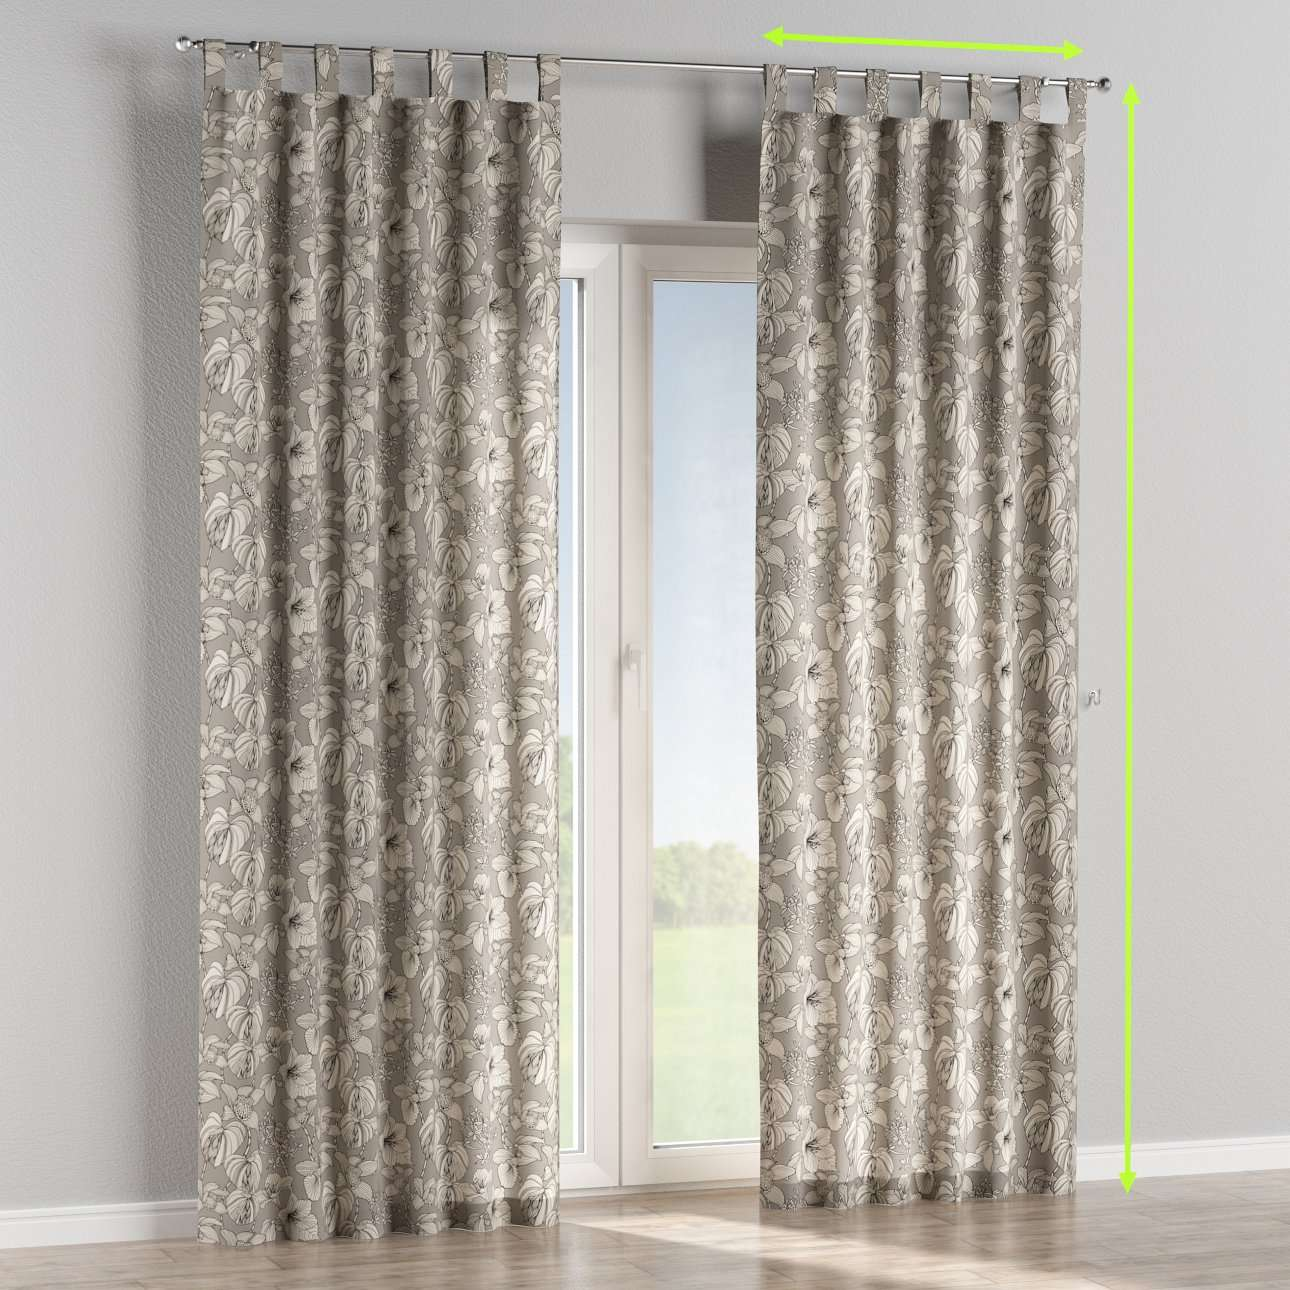 Tab top lined curtains in collection Brooklyn, fabric: 137-80